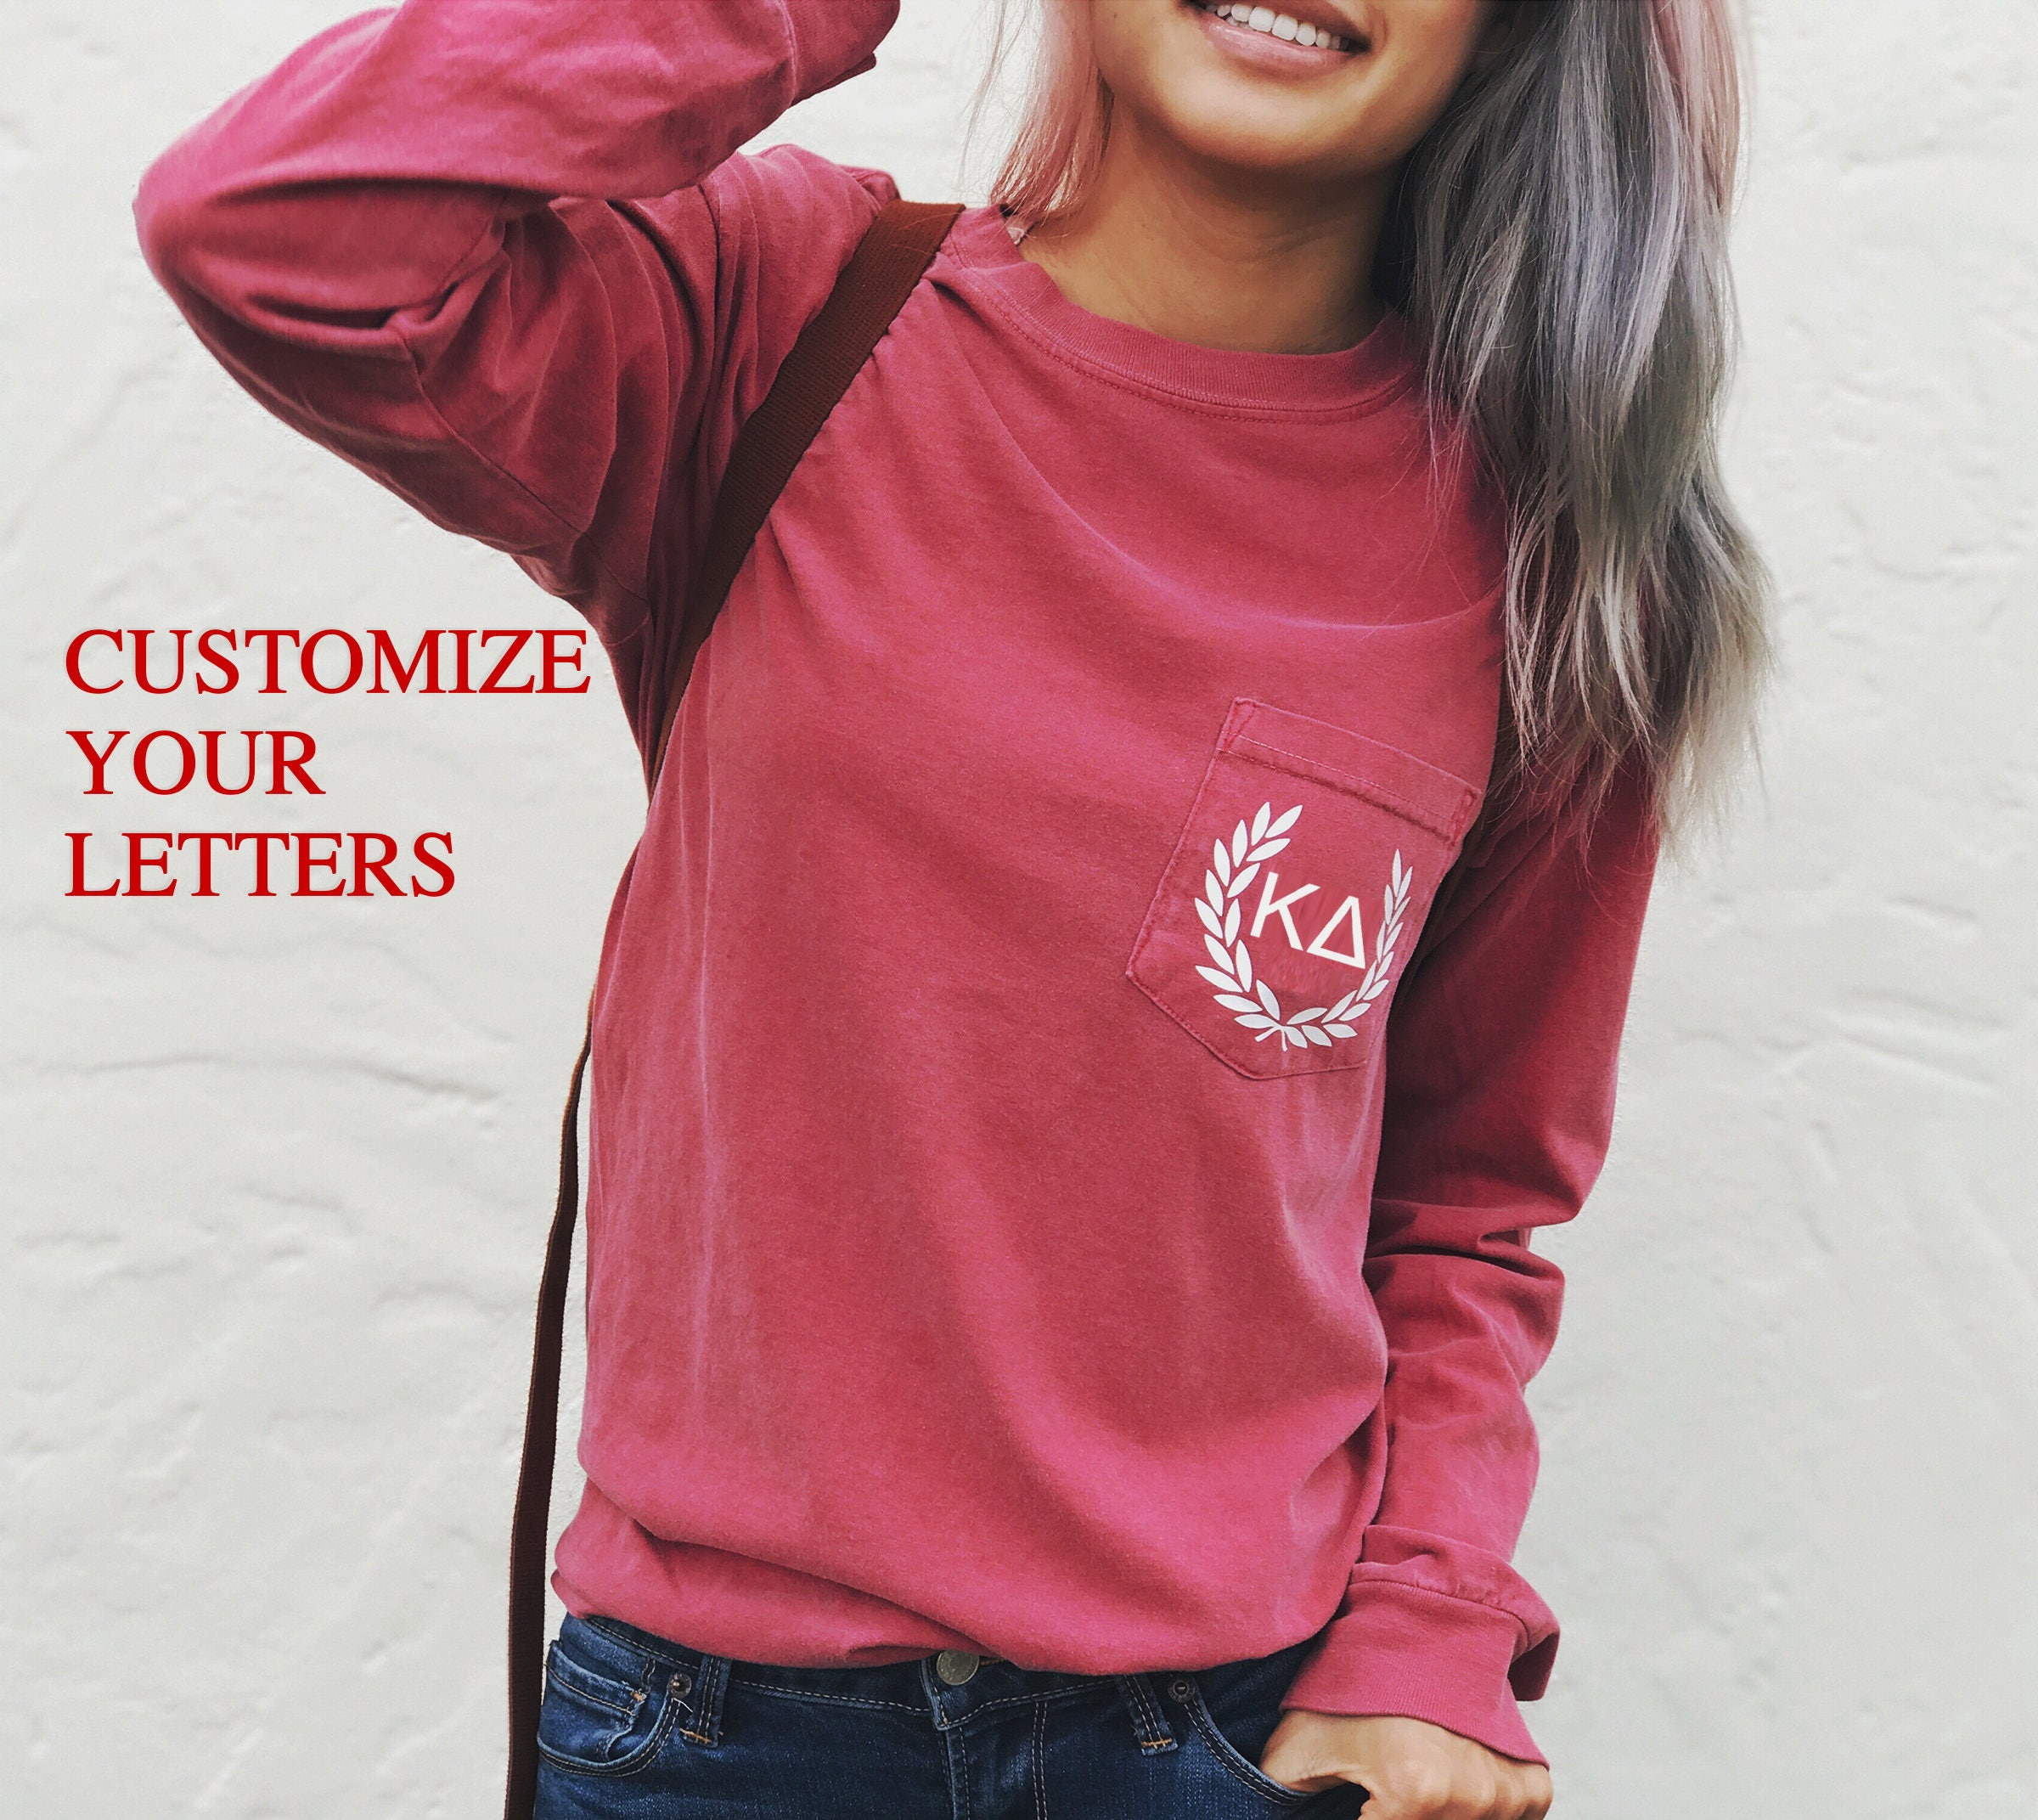 you tee sleeve monogrammed custom colors personalized sleeved pocket comfortcolorslongsleevetee comfort re apparel long comforter